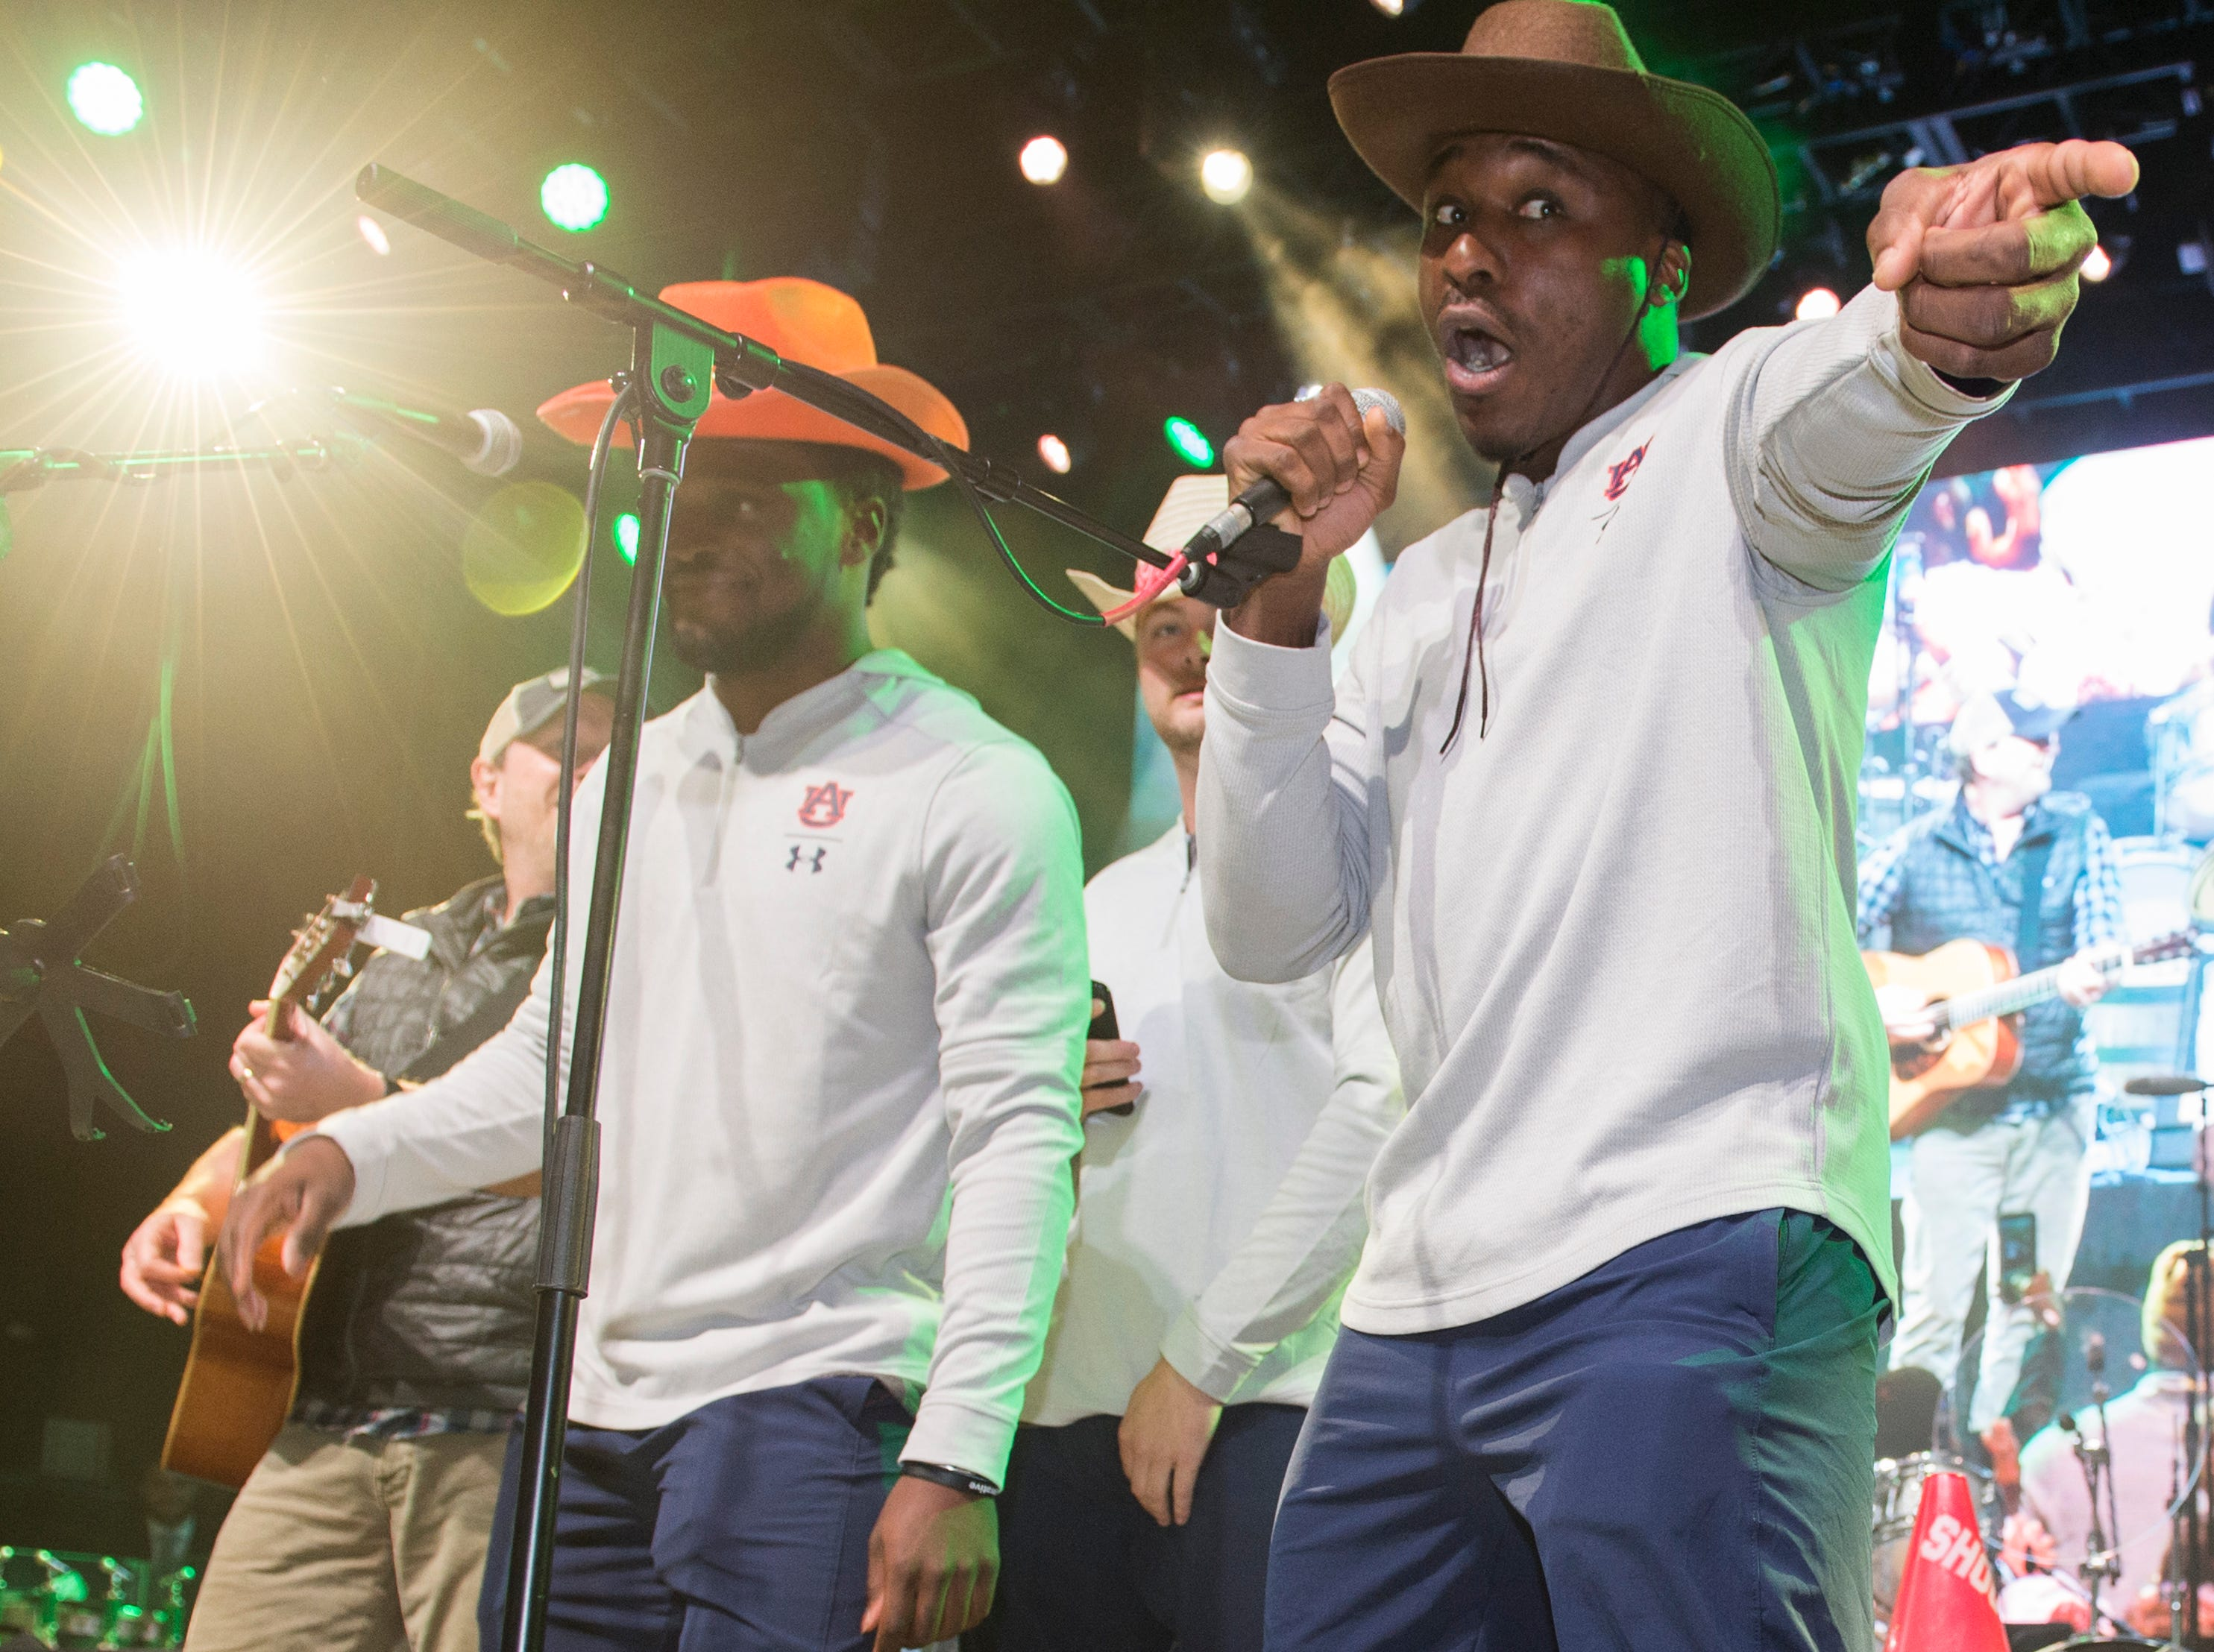 Auburn players sing with singer/songwriter Jim Beavers during a singing competition at Wild Horse Saloon in Nashville, Ten., on Wednesday, Dec. 26, 2018. Auburn takes on Purdue in the Music City Bowl Friday.